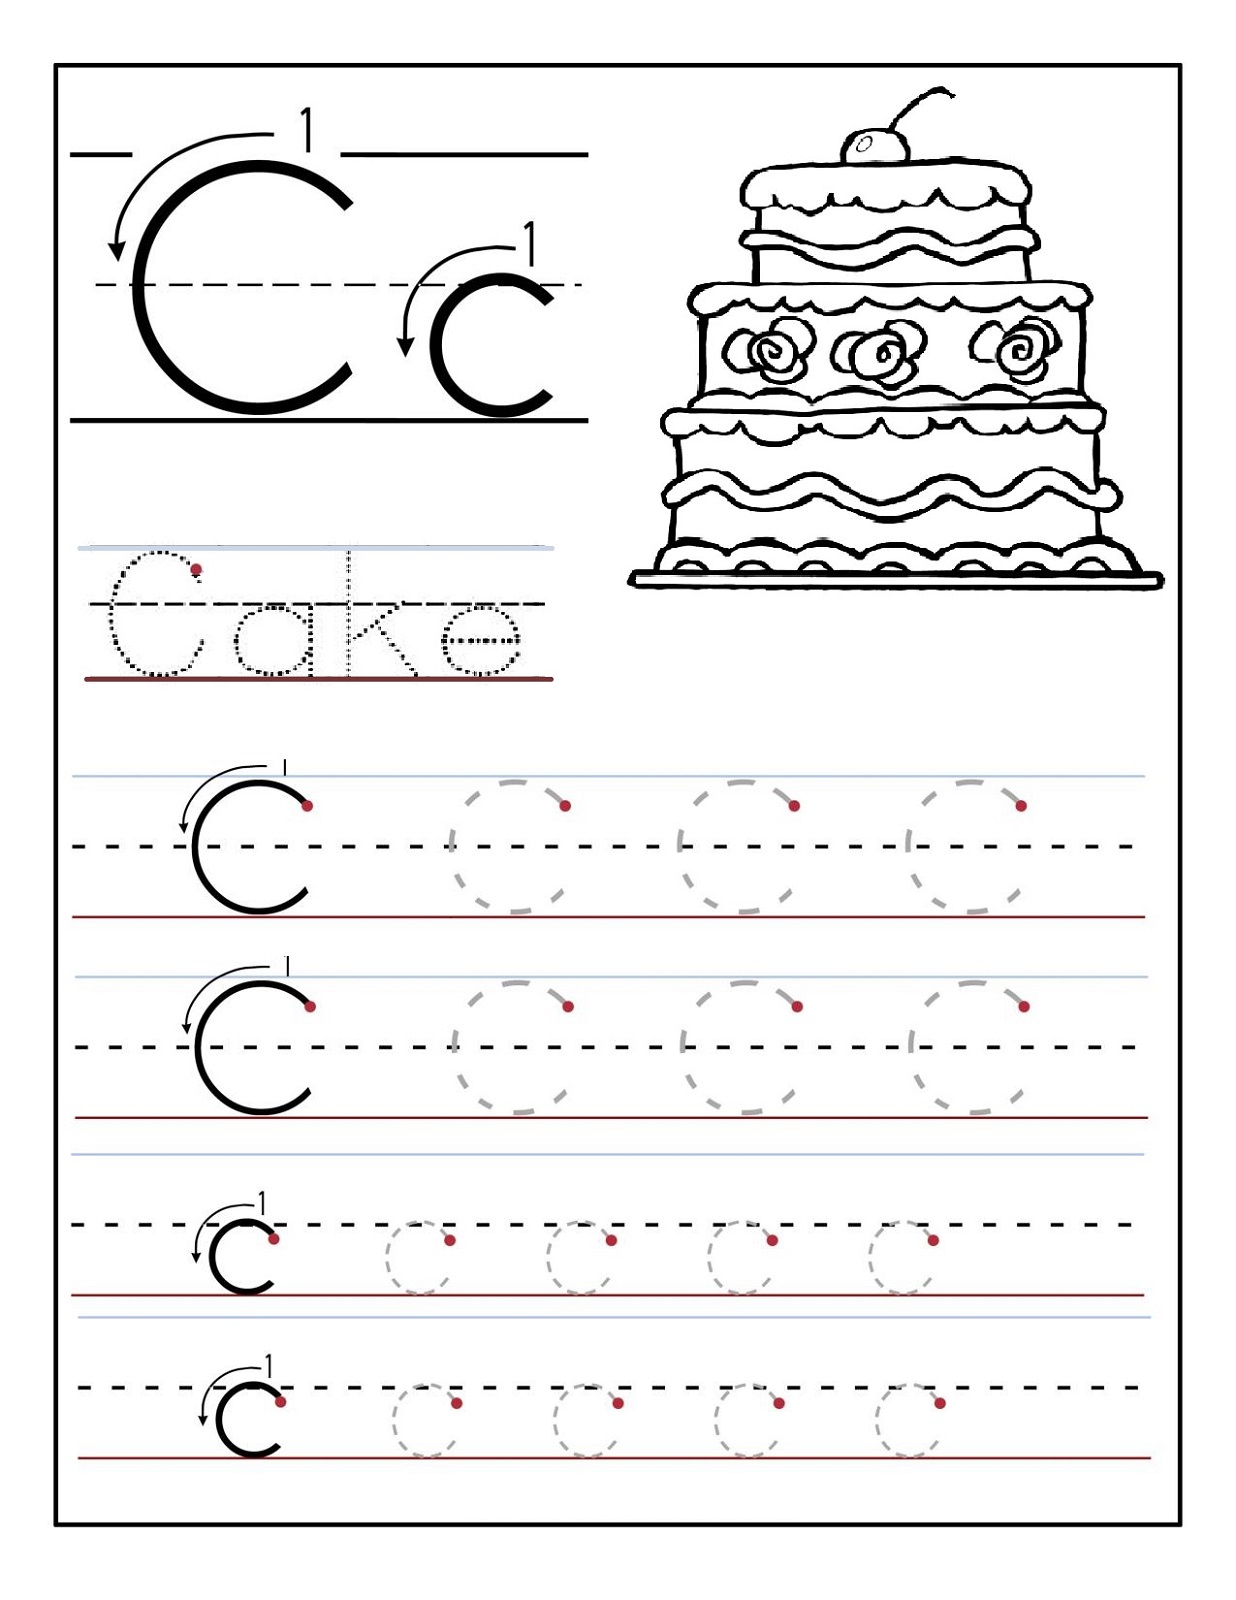 Alphabet Writing Activities For Preschoolers